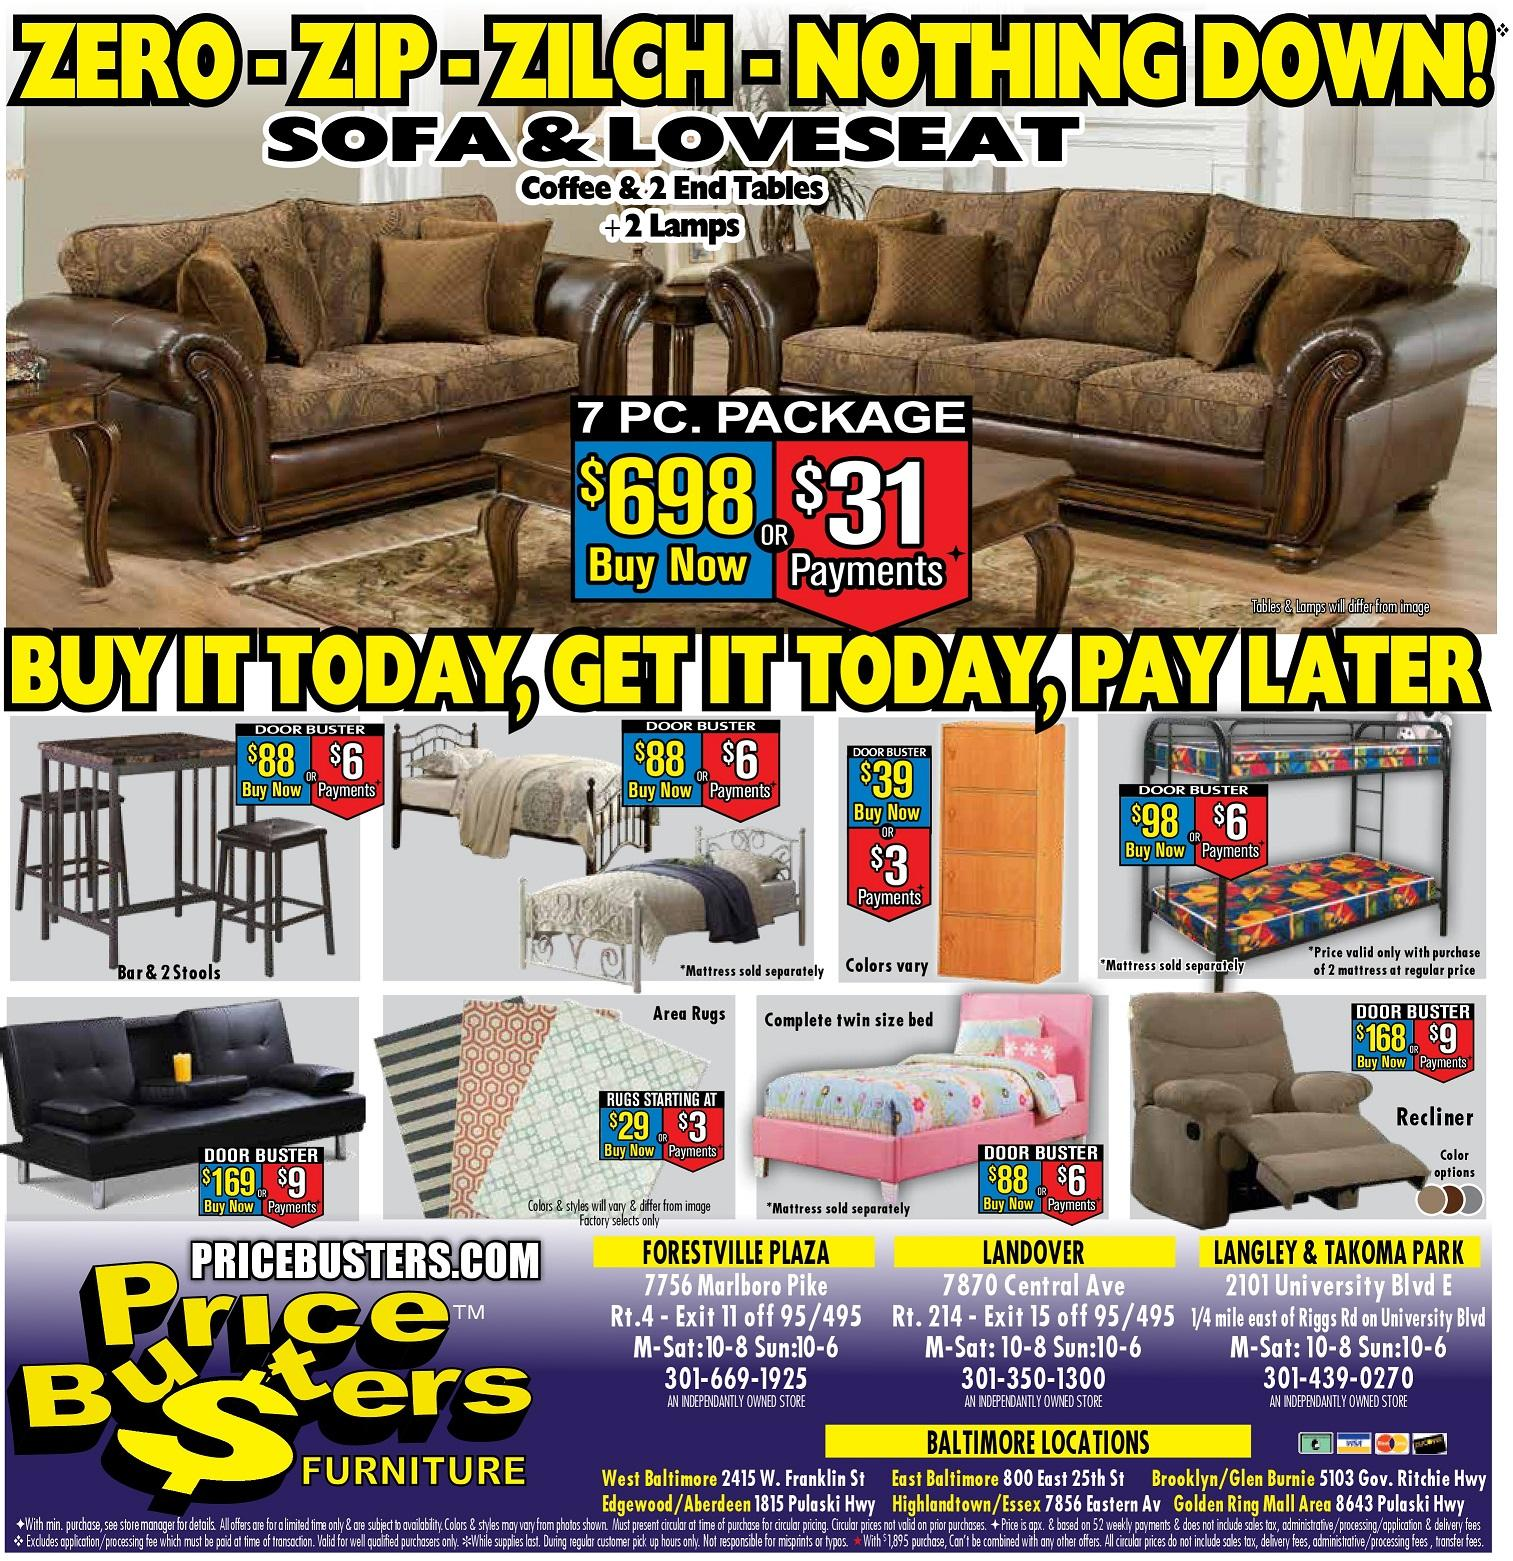 Price Busters Discount Furniture Baltimore Maryland Md